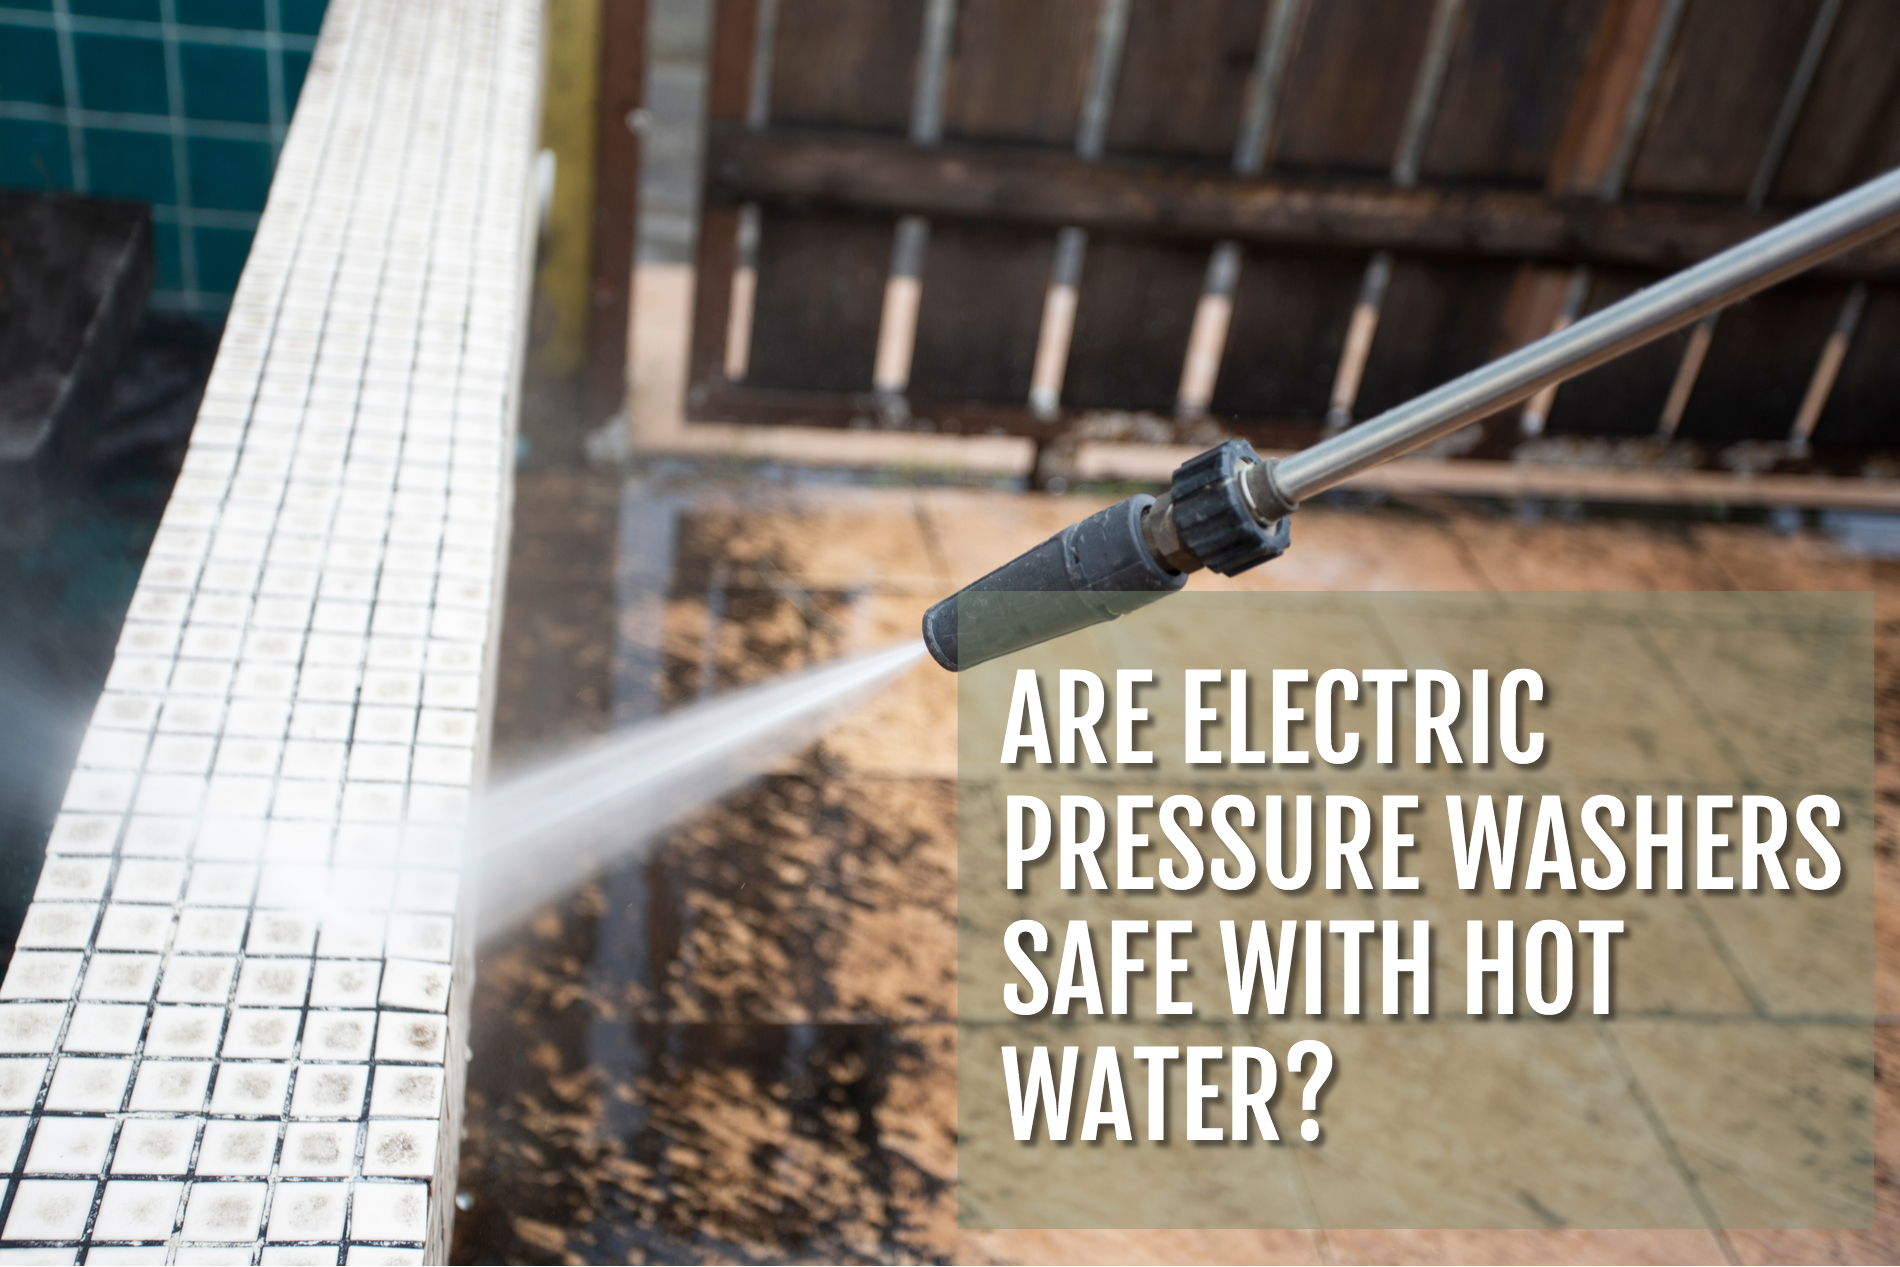 Are Electric Pressure Washers Safe With Hot Water?